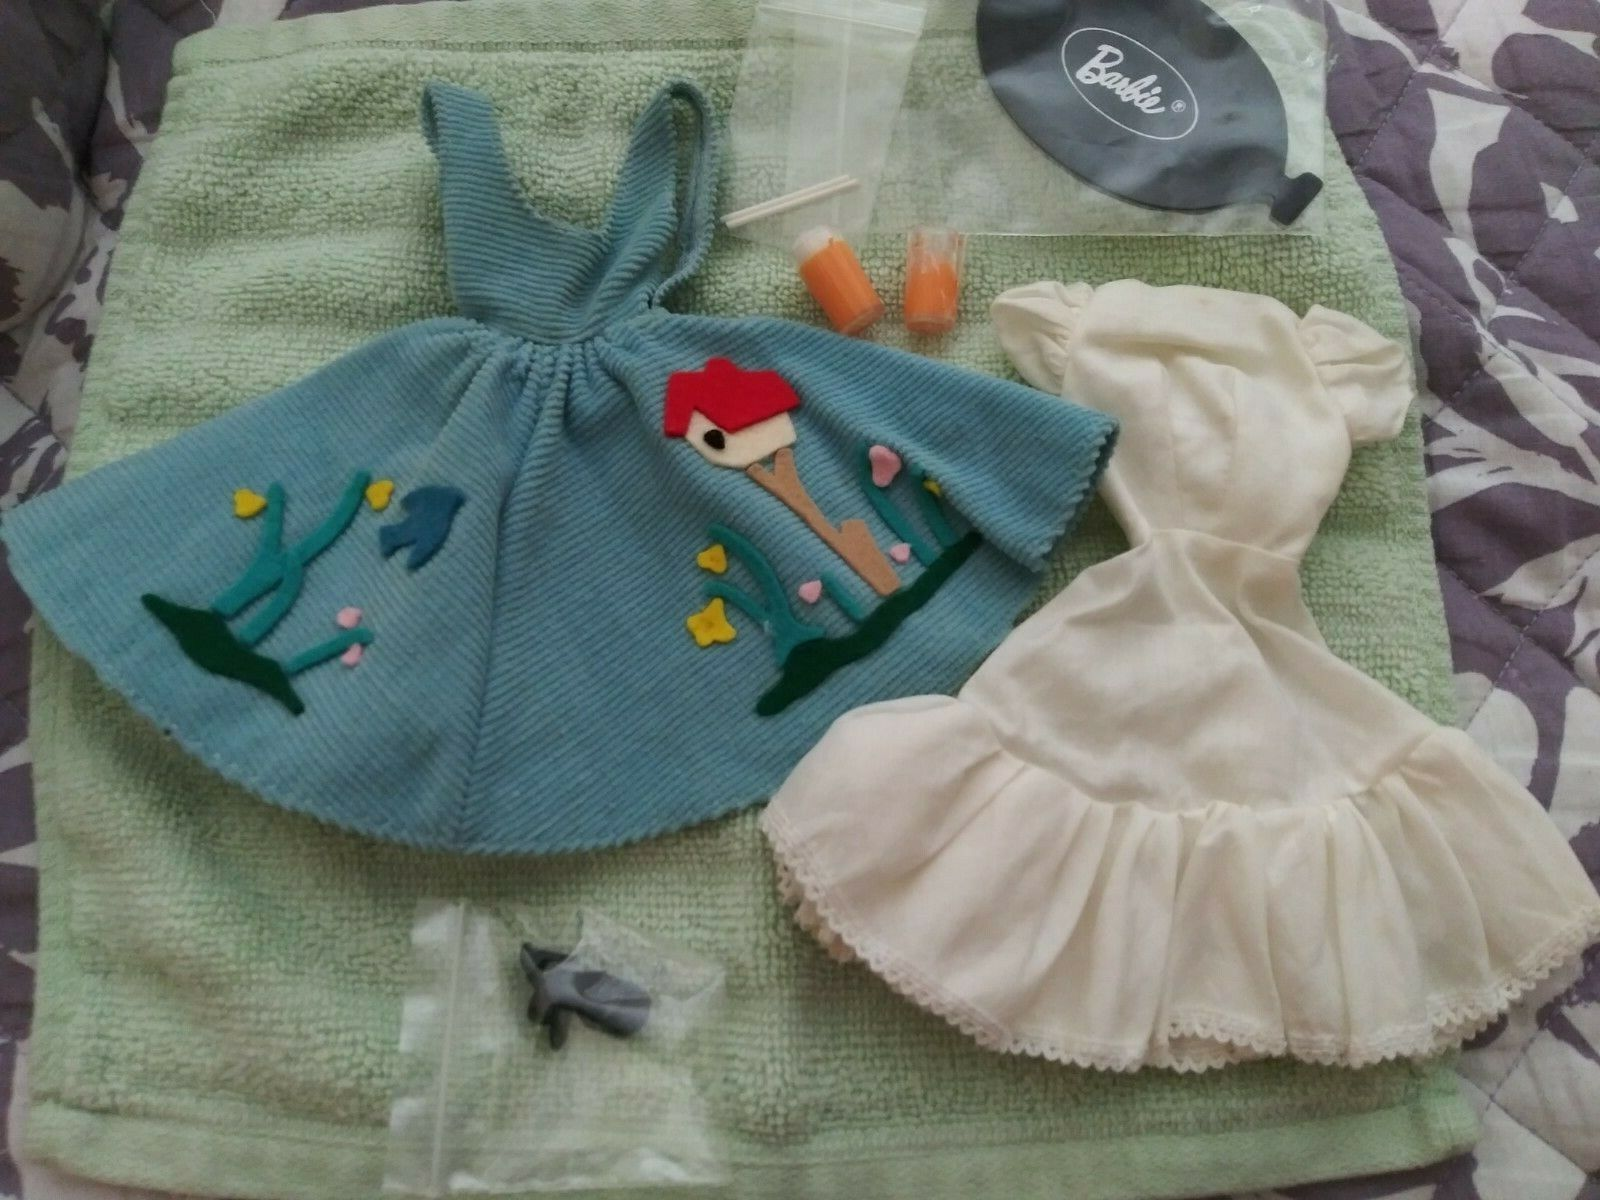 Vintage Barbie Friday Night Date 1960-1964 979 Outfit - $50.00